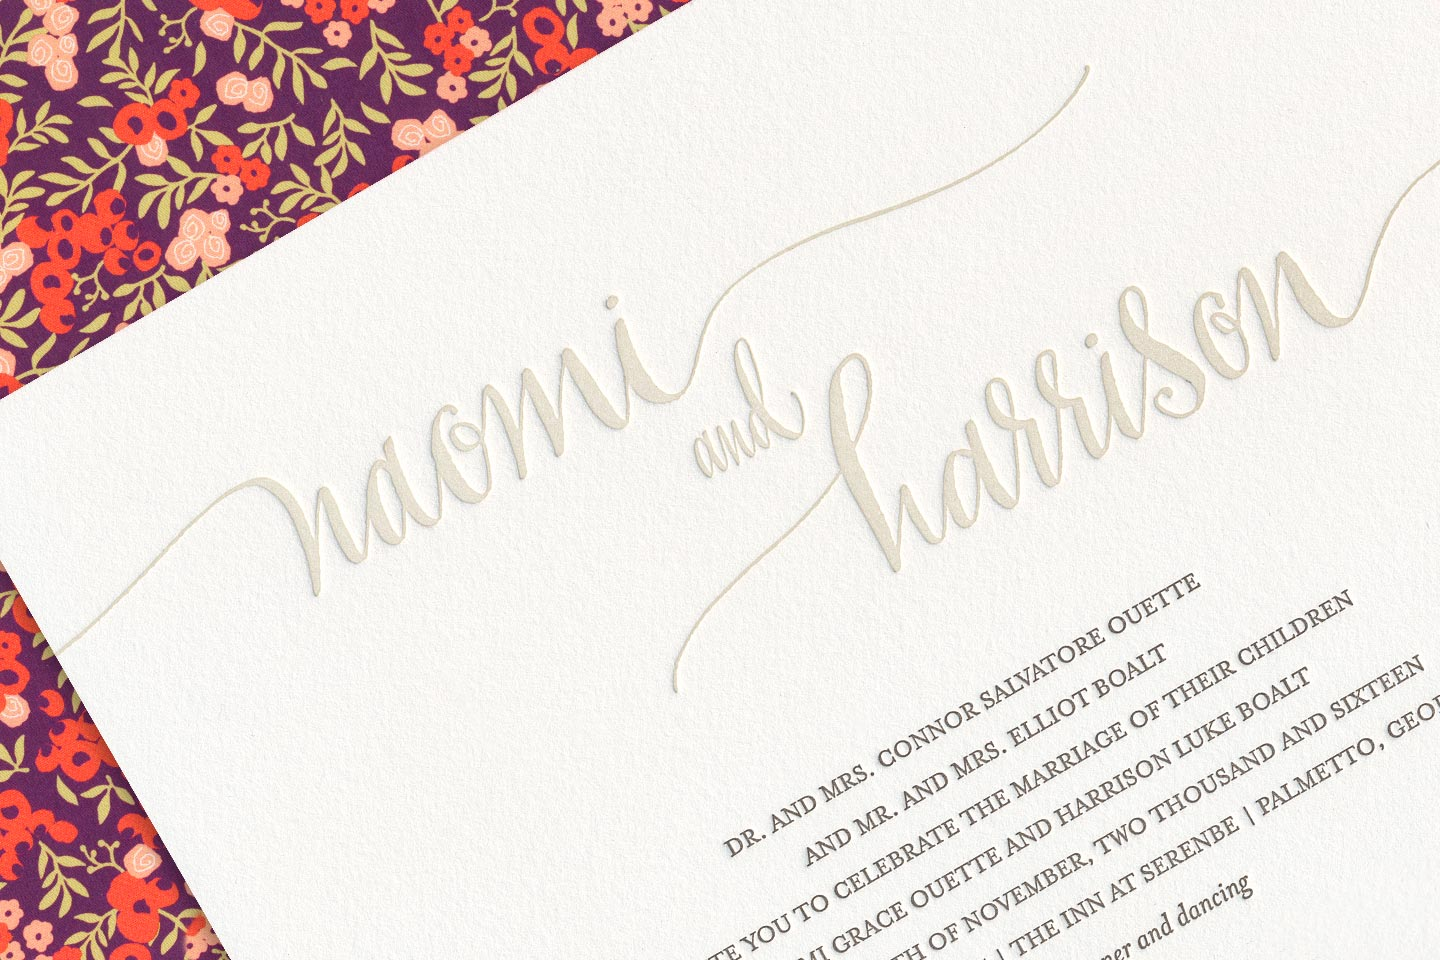 a beautiful sample wedding invitation for naomi and harrison, overlayed on top of its envelope featuring a beautiful floral print liner, captured by 4d, inc